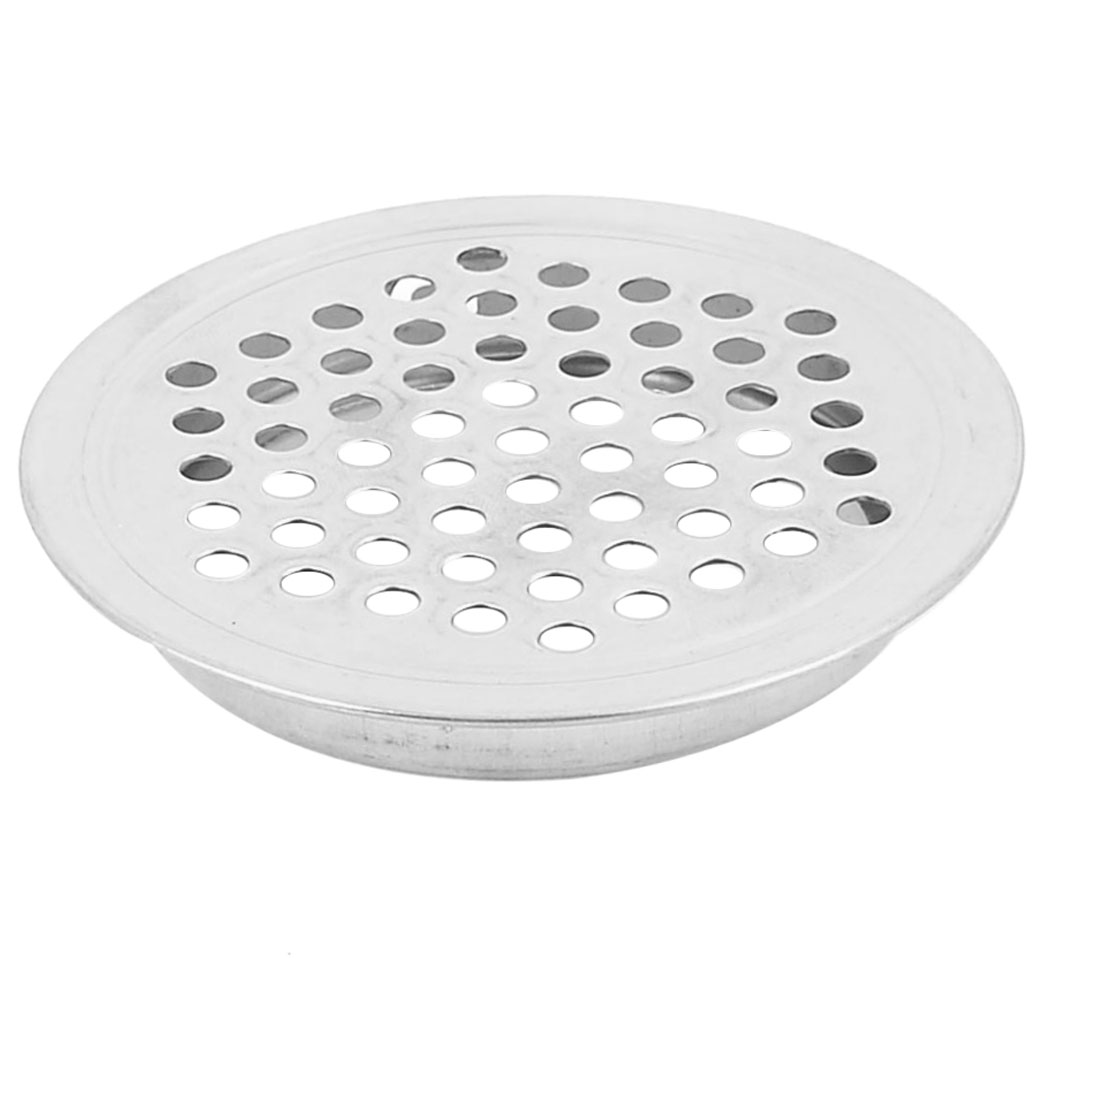 65mm Dia Silver Tone Metal Perforated Mesh Hole Shoes Cabinet Air Vent Louver Cover